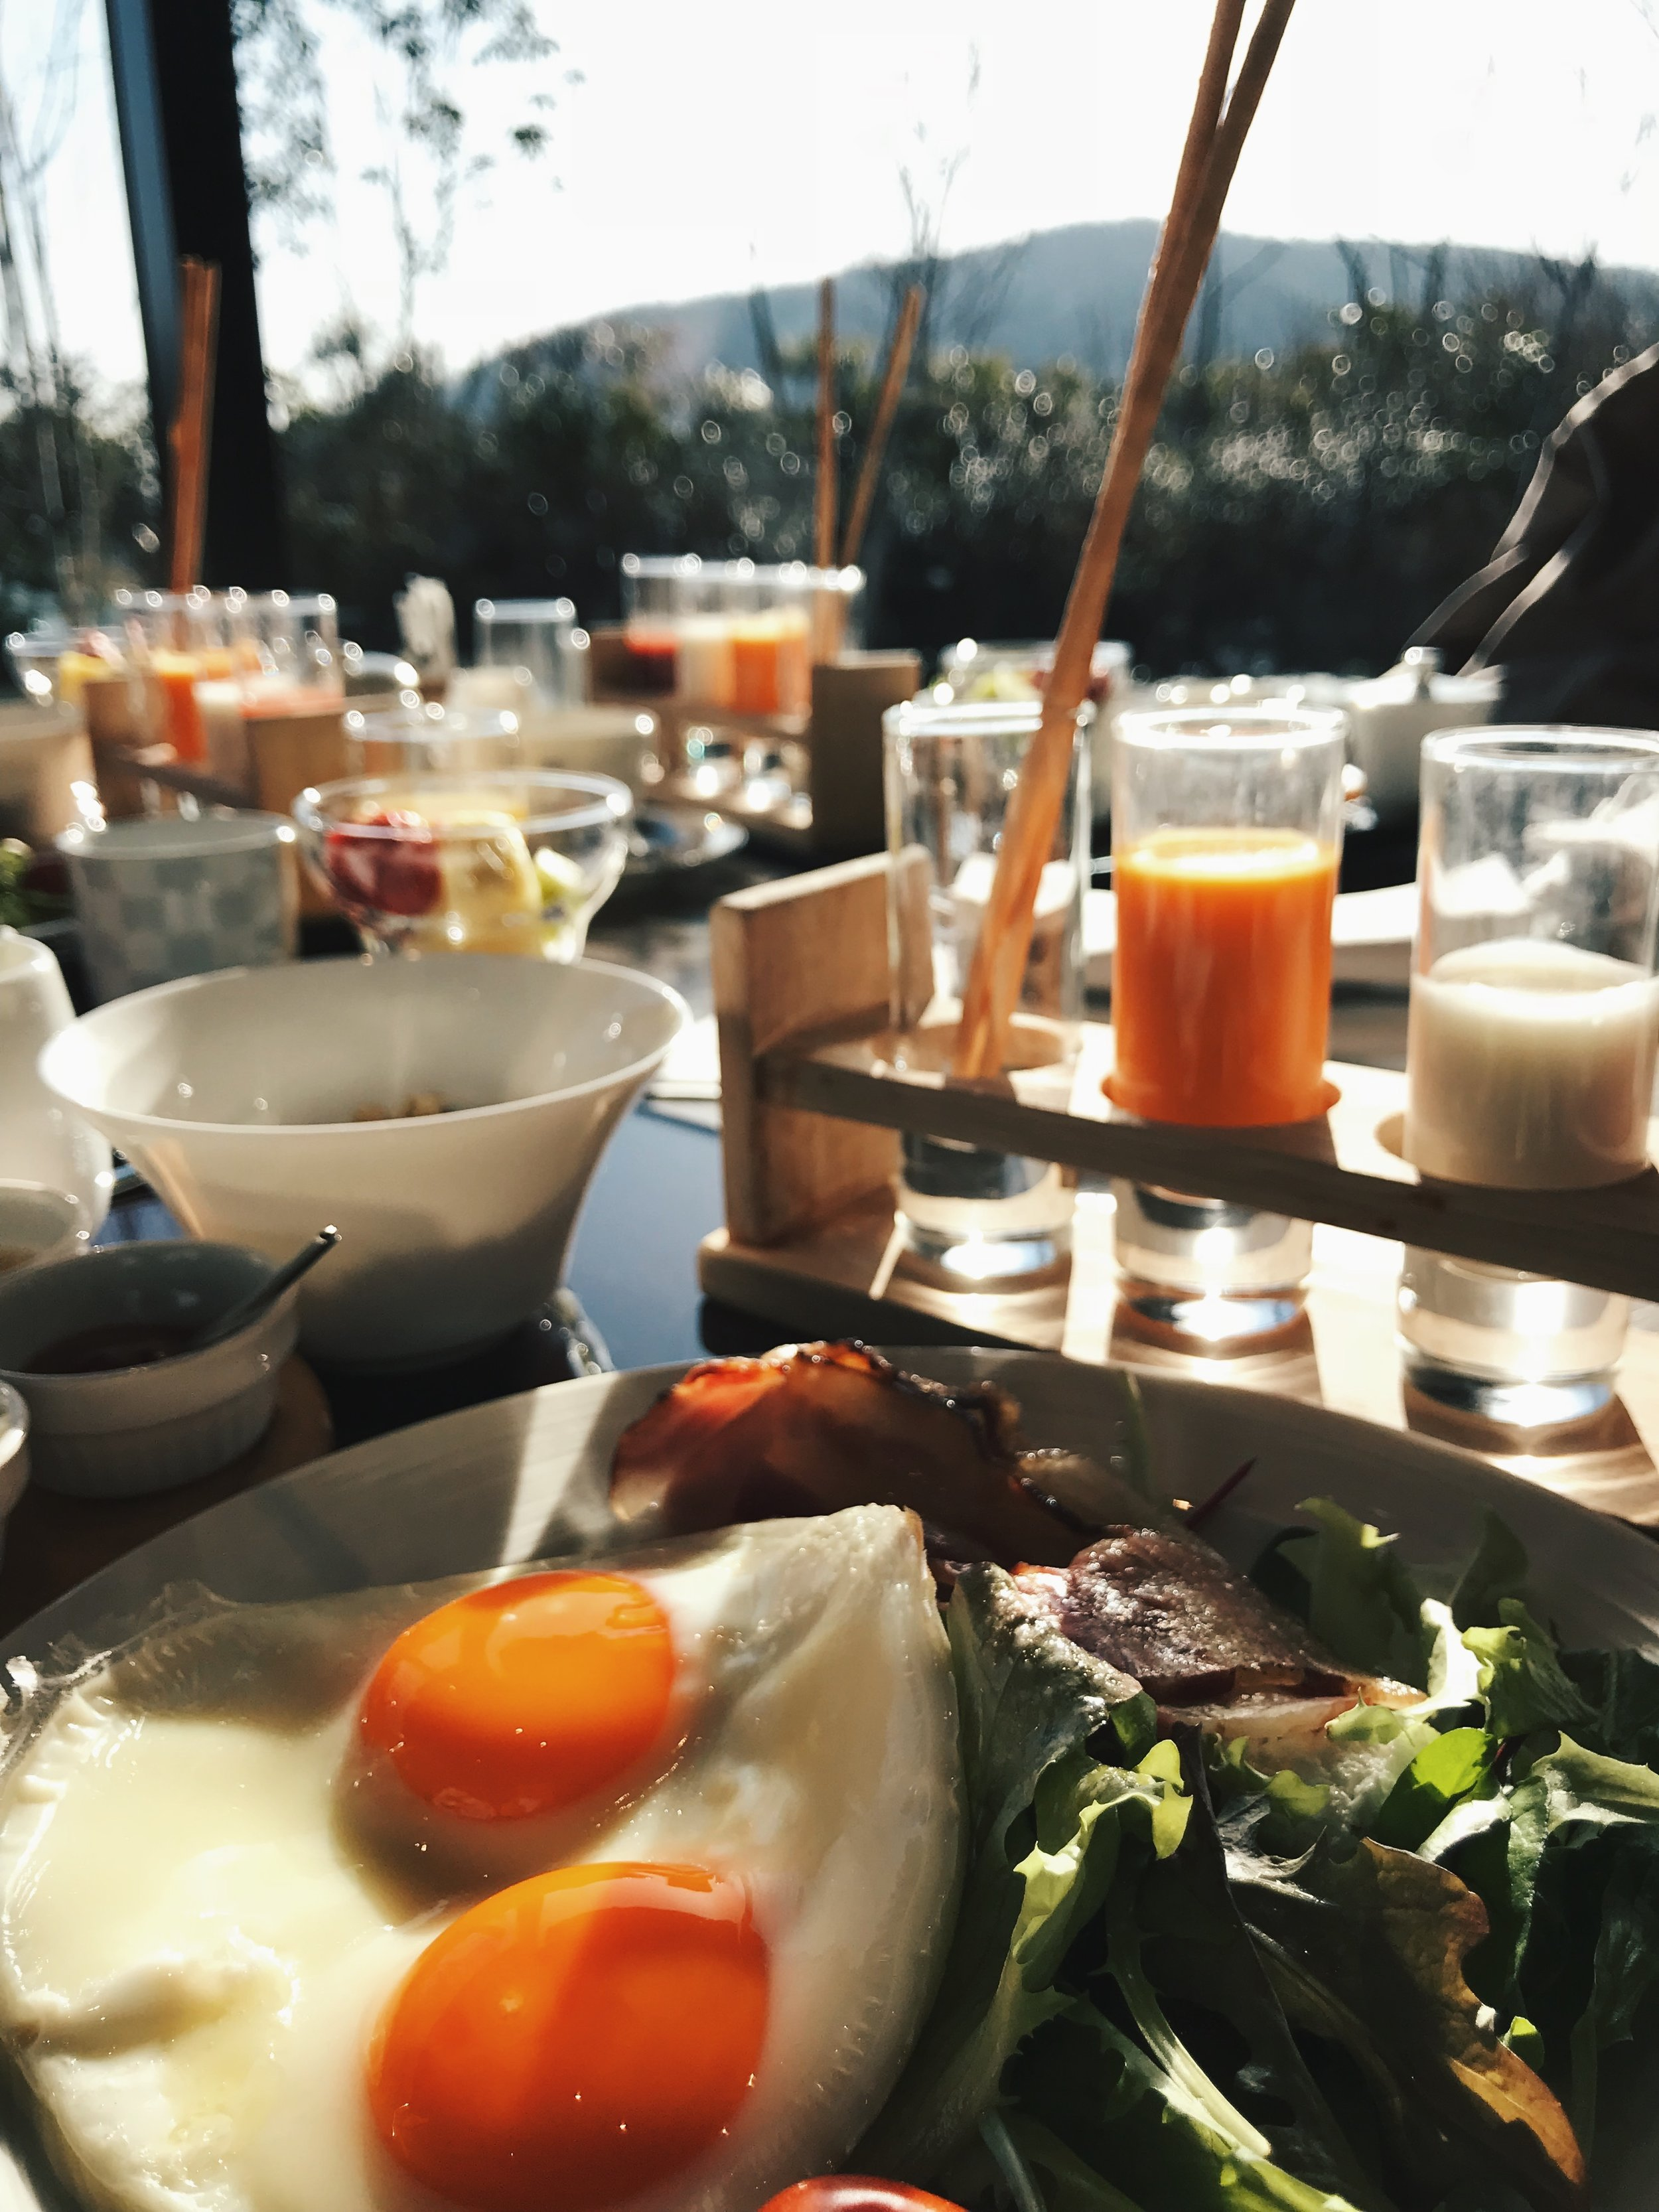 Western breakfast spread with a view